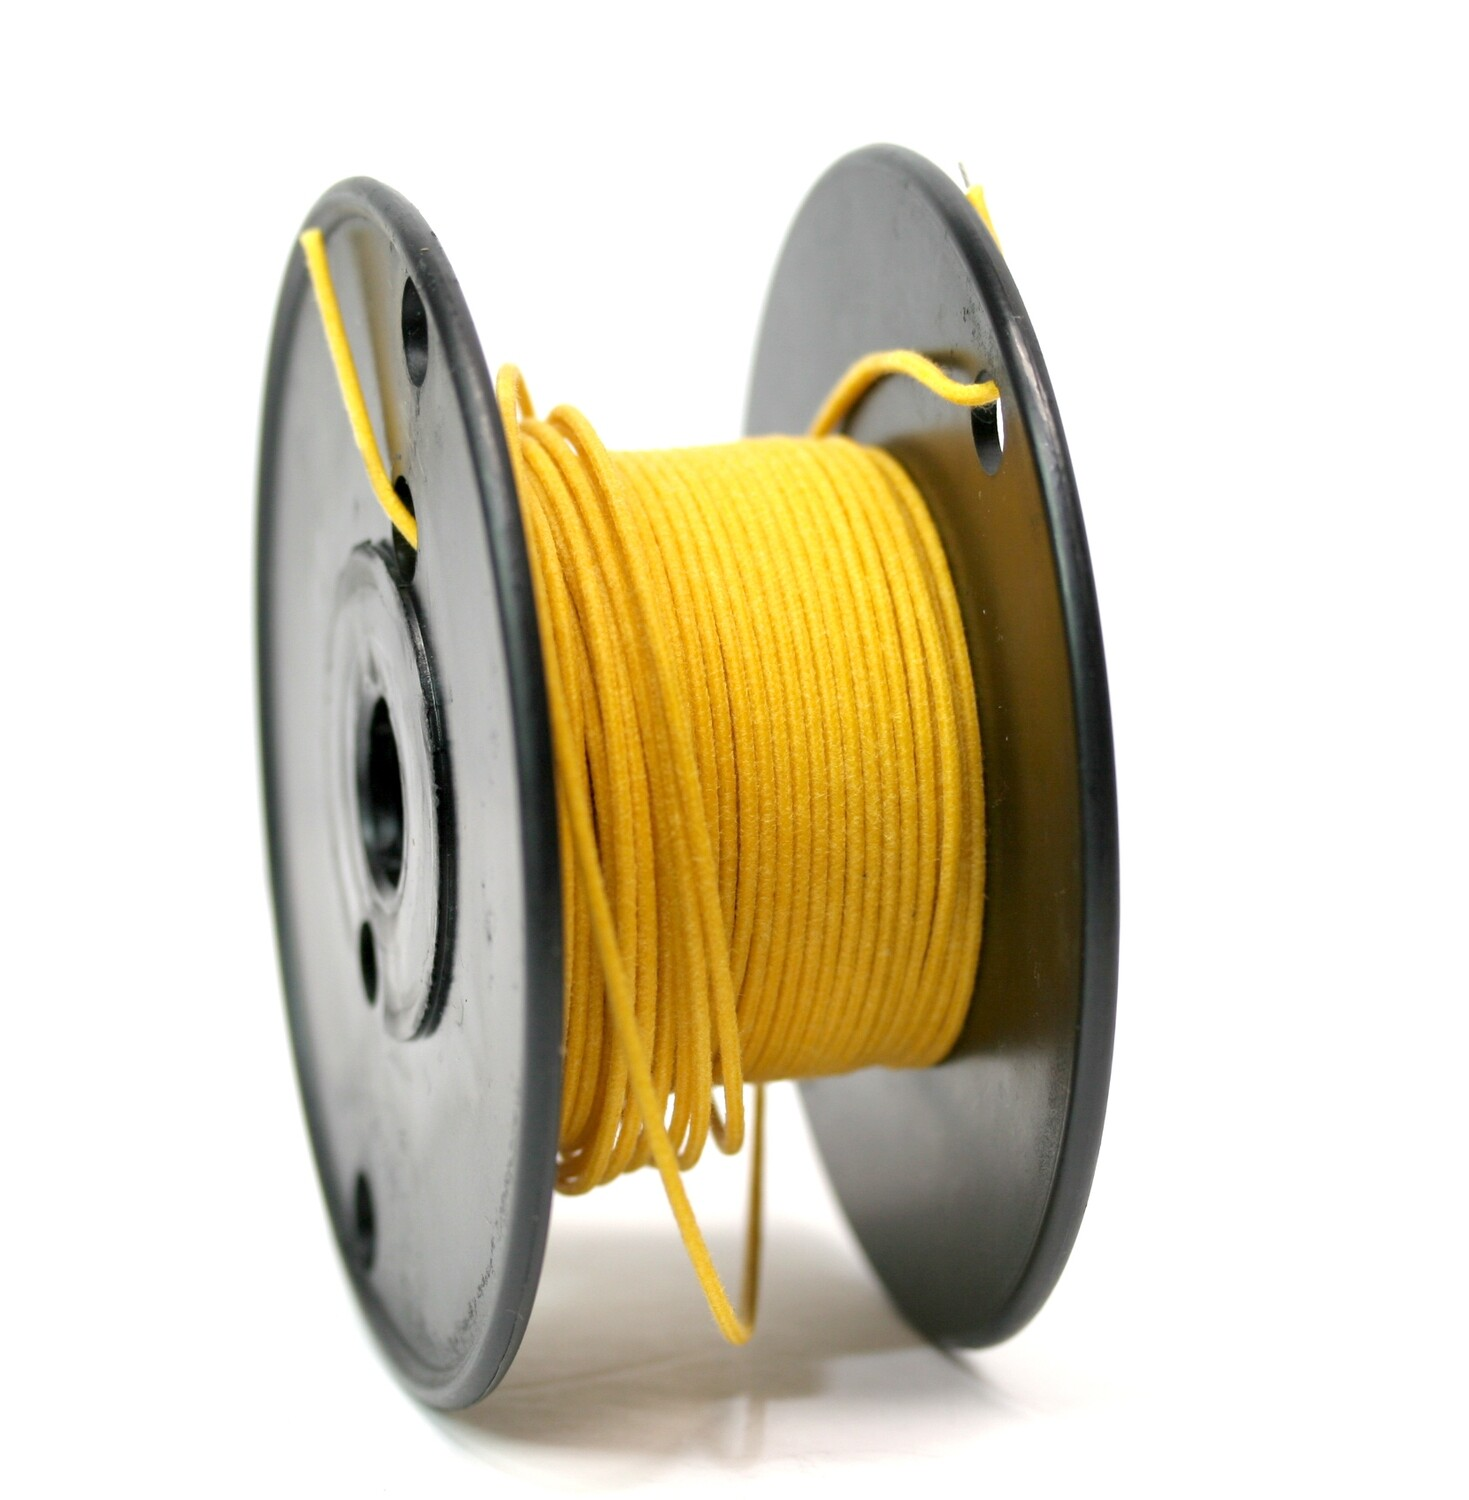 1 foot Premium USA Vintage Stranded Core Push-back Cloth Wire Yellow